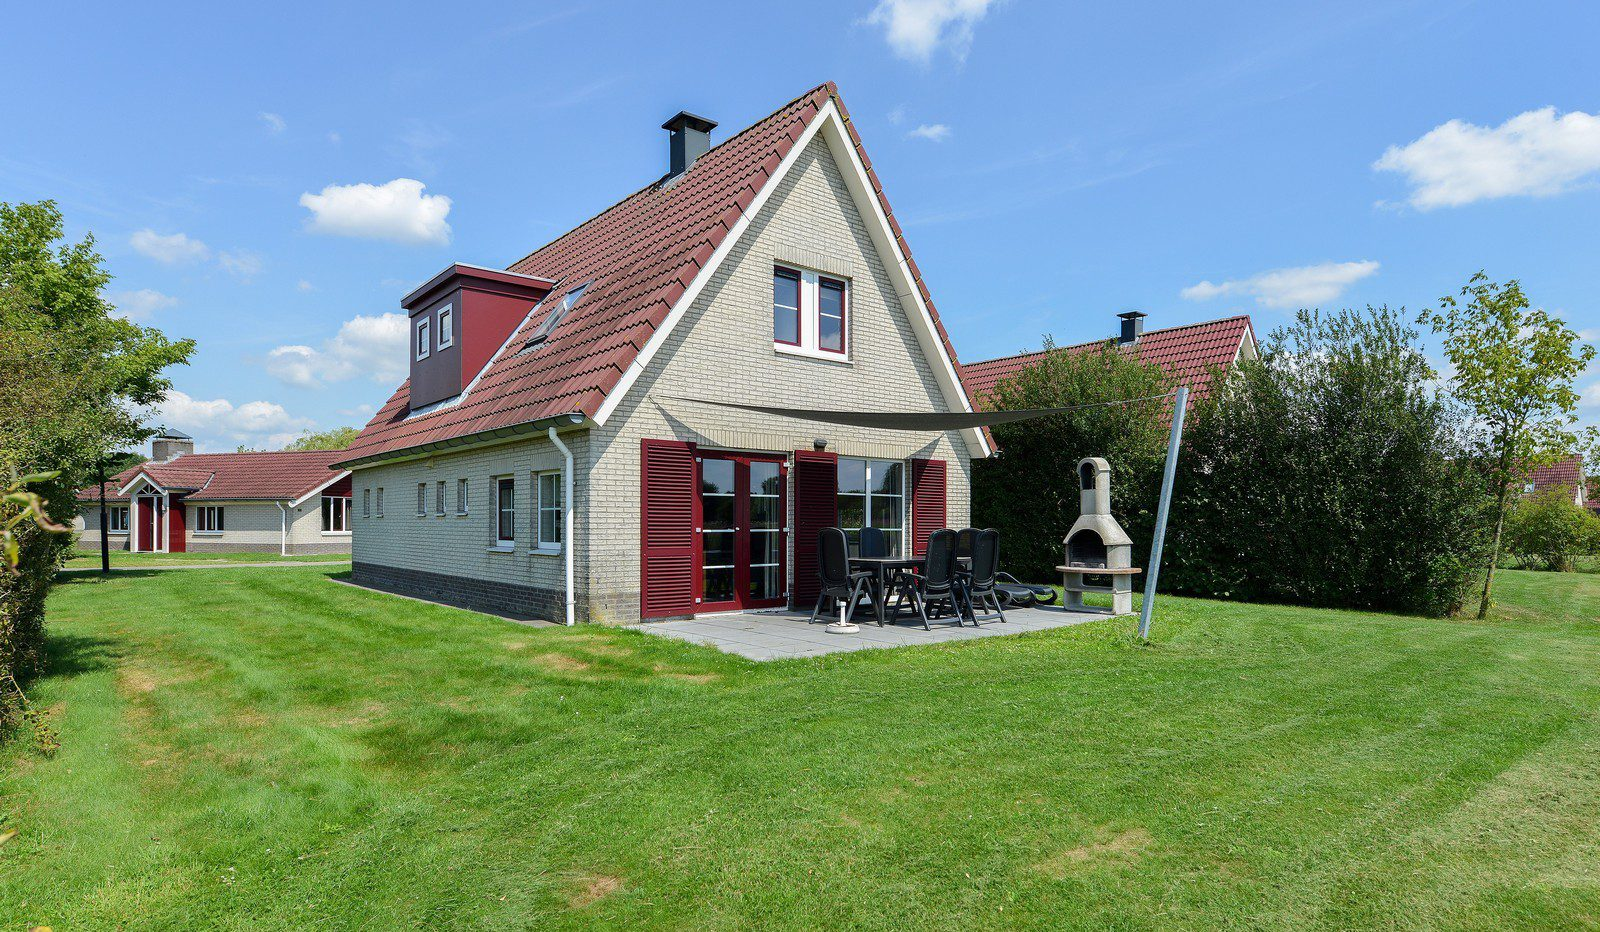 RecreatieParc Sandur nr. 171, type Silurium VIP-cottage